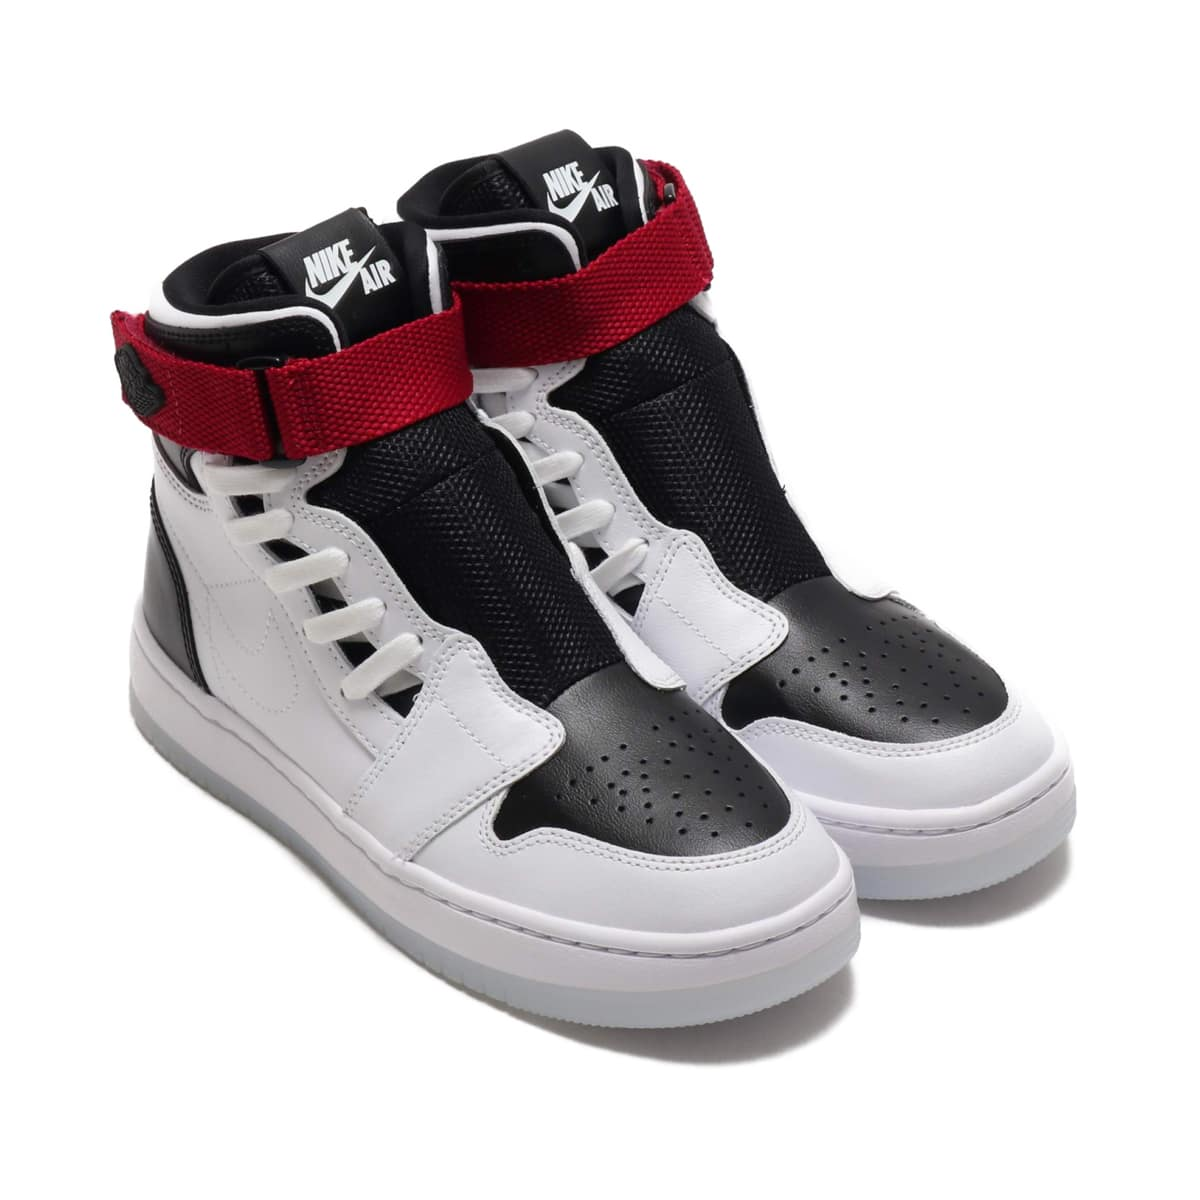 NIKE WMNS AIR JORDAN 1 NOVA XX WHITE/BLACK-NOBLE RED 20SP-S_photo_large